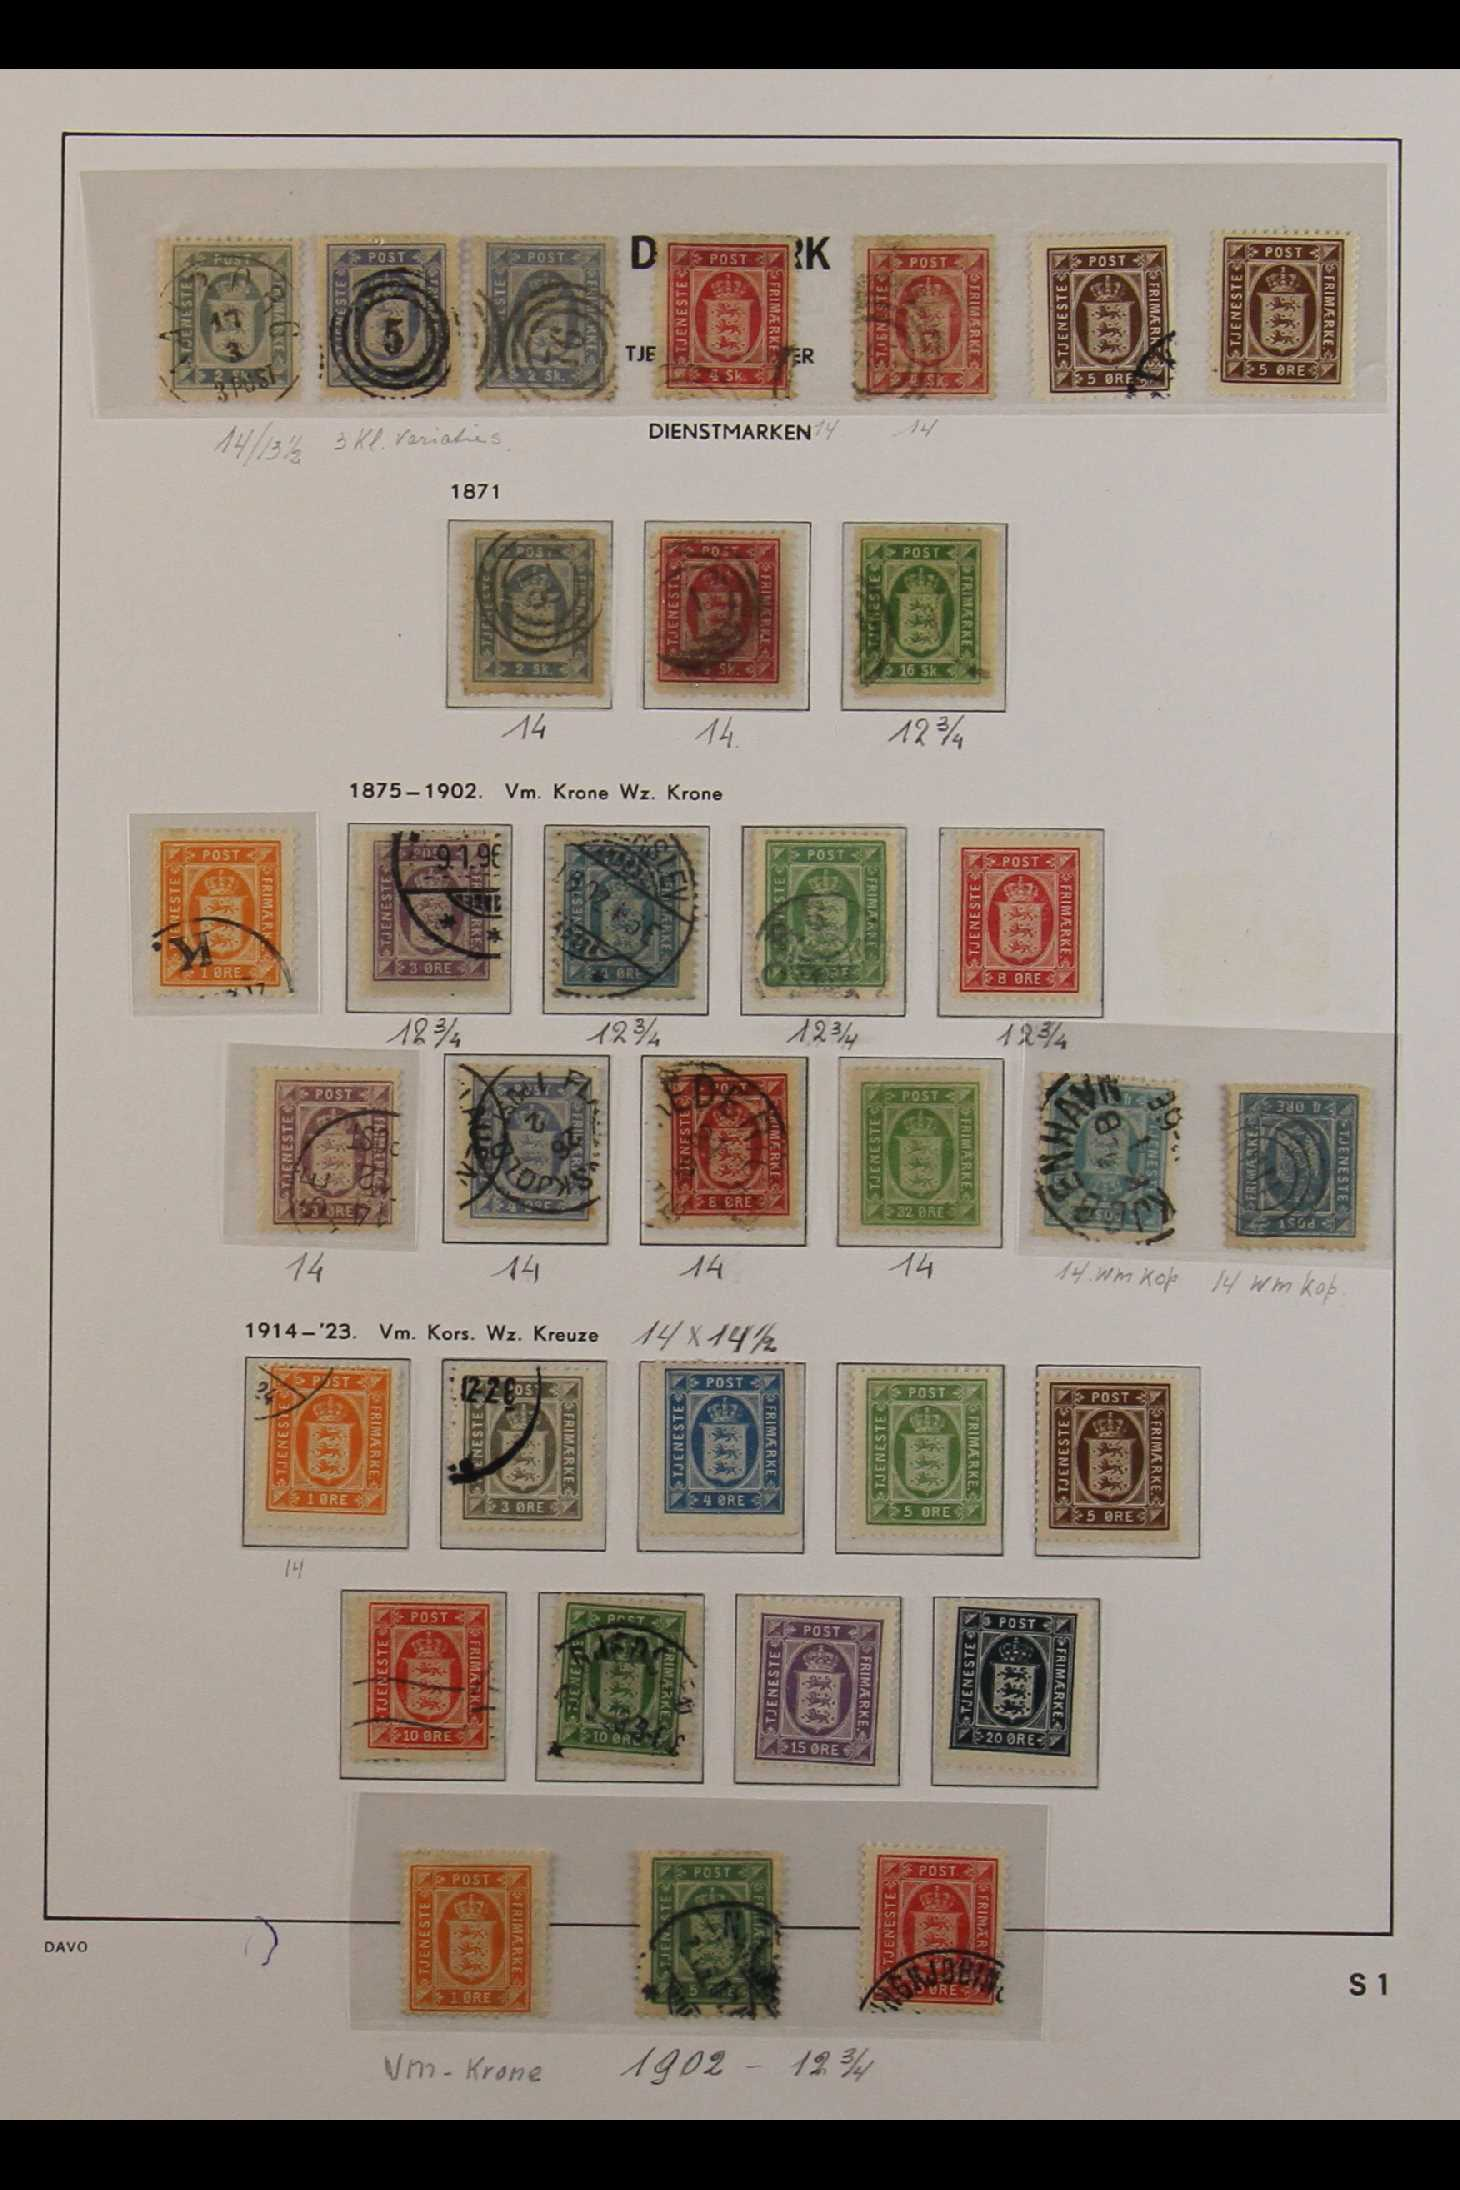 DENMARK OFFICIAL STAMPS 1871-1923 mint and used collection, incl. 1871 (Skilling) used 2sk (4),